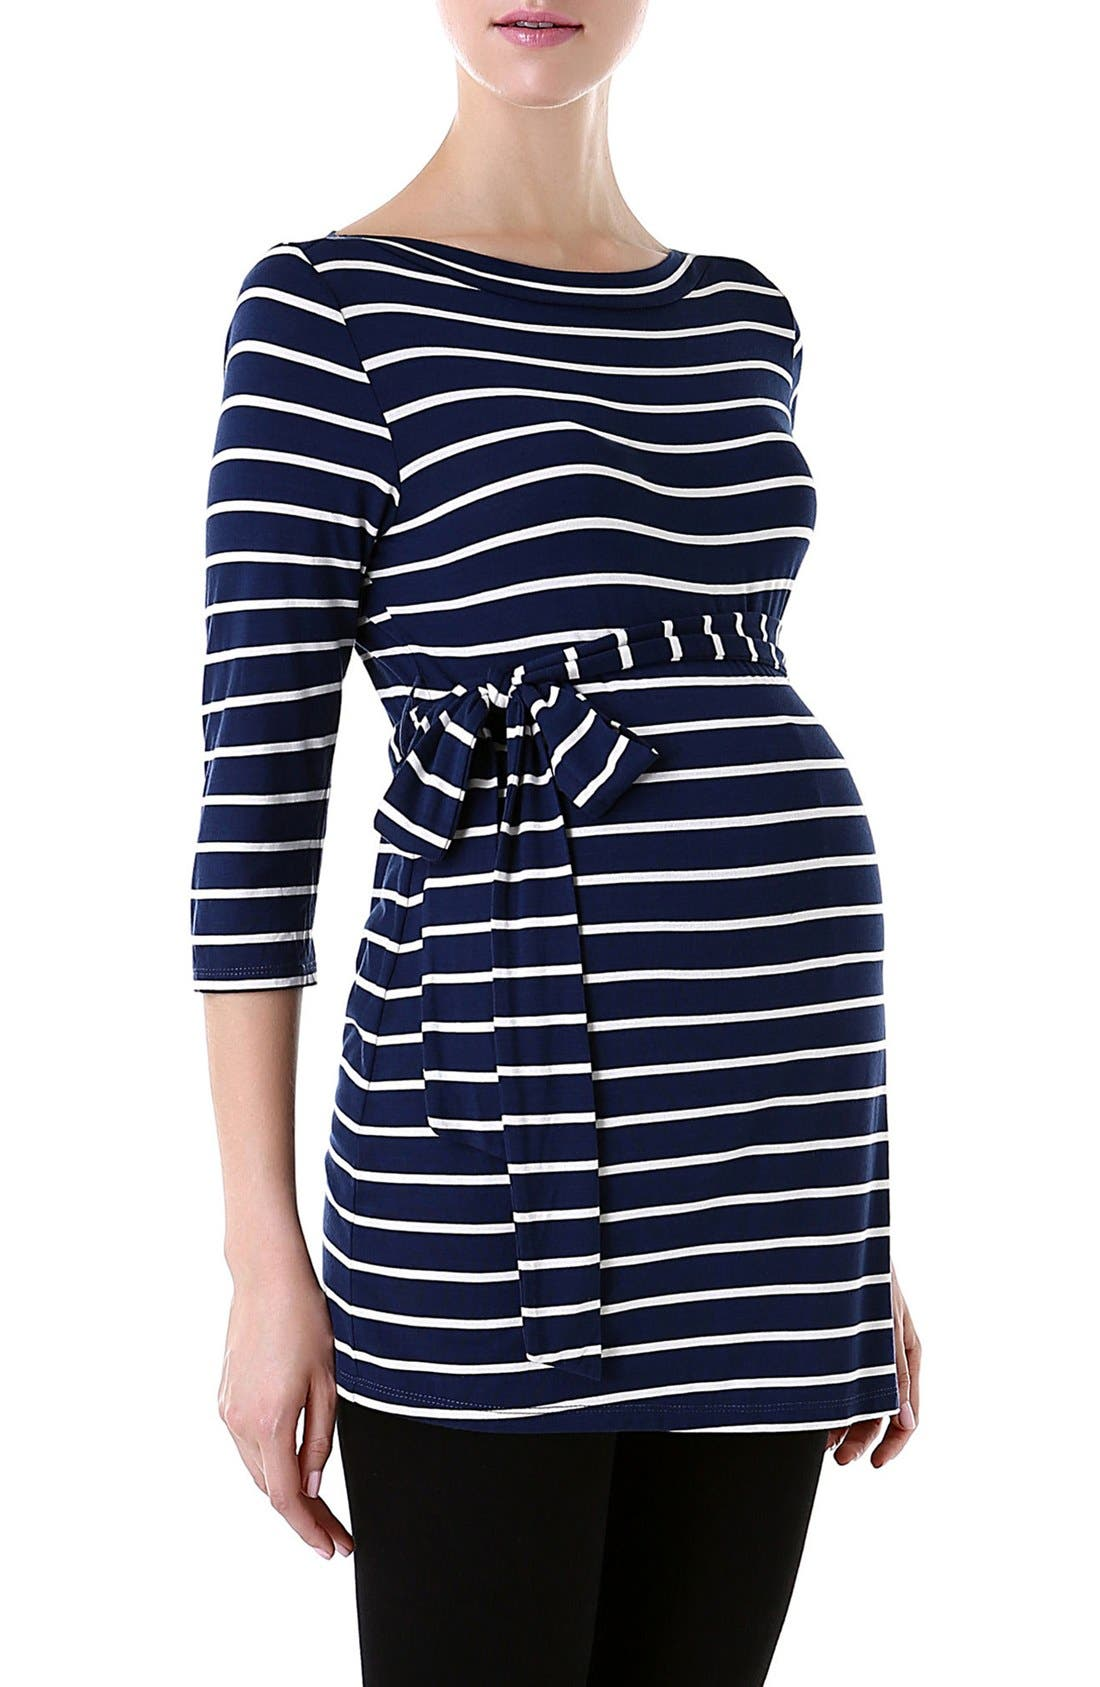 'Whitney' Stripe Belted Maternity Top,                             Main thumbnail 1, color,                             NAVY/ IVORY